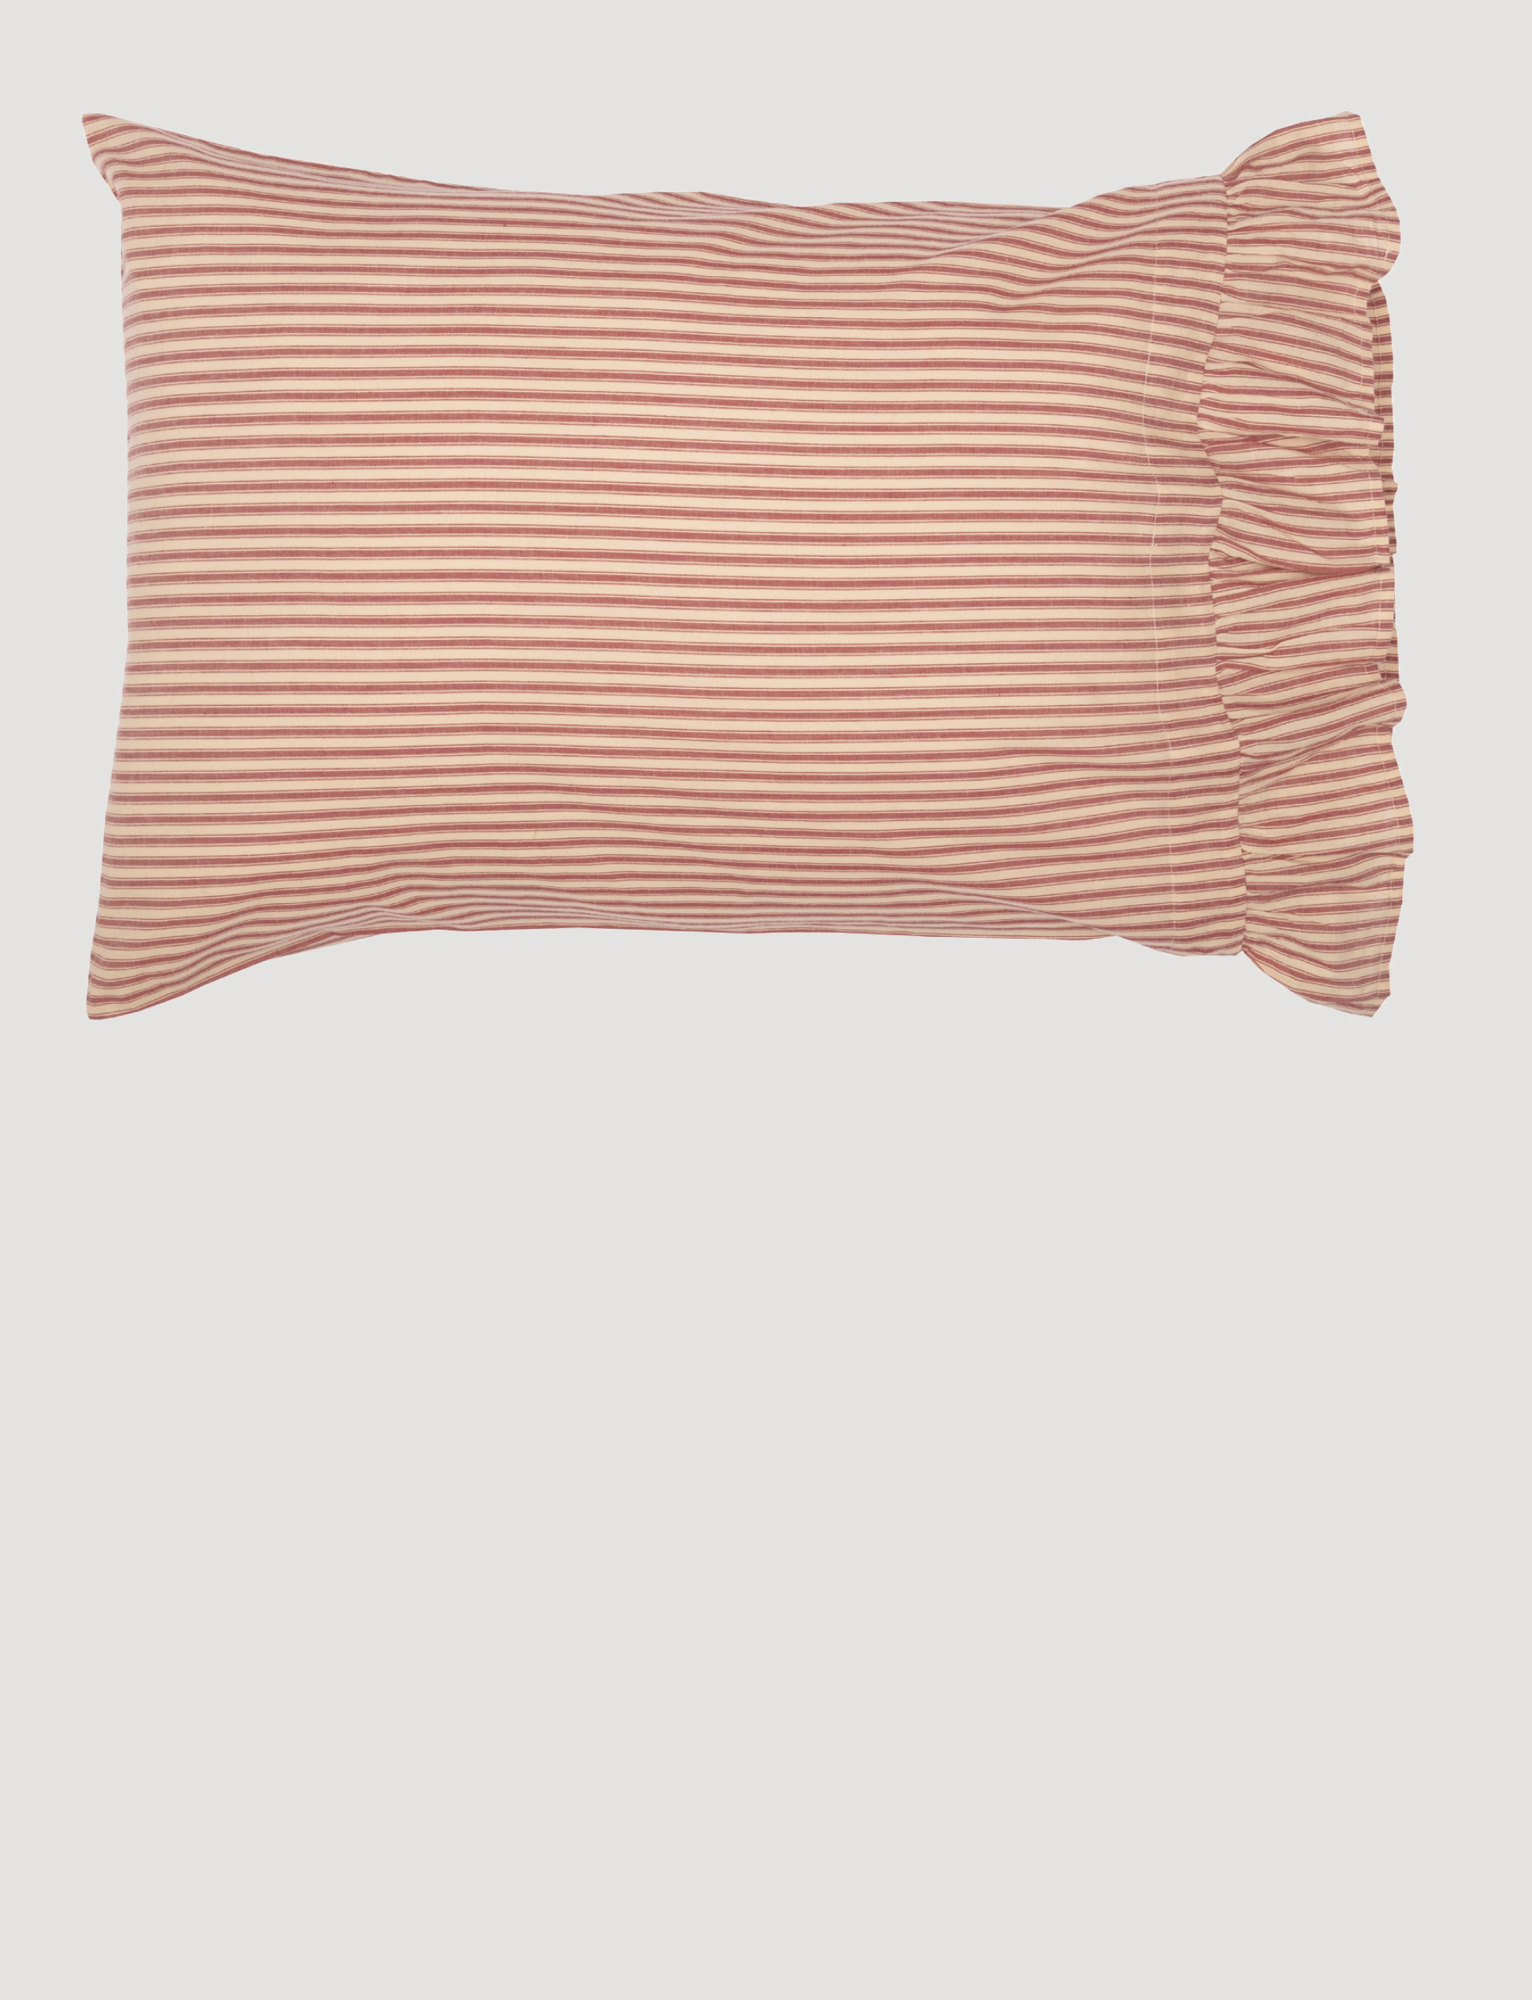 VHC Brands Sawyer Mill Red Ticking Stripe Pillow Case Set of 2